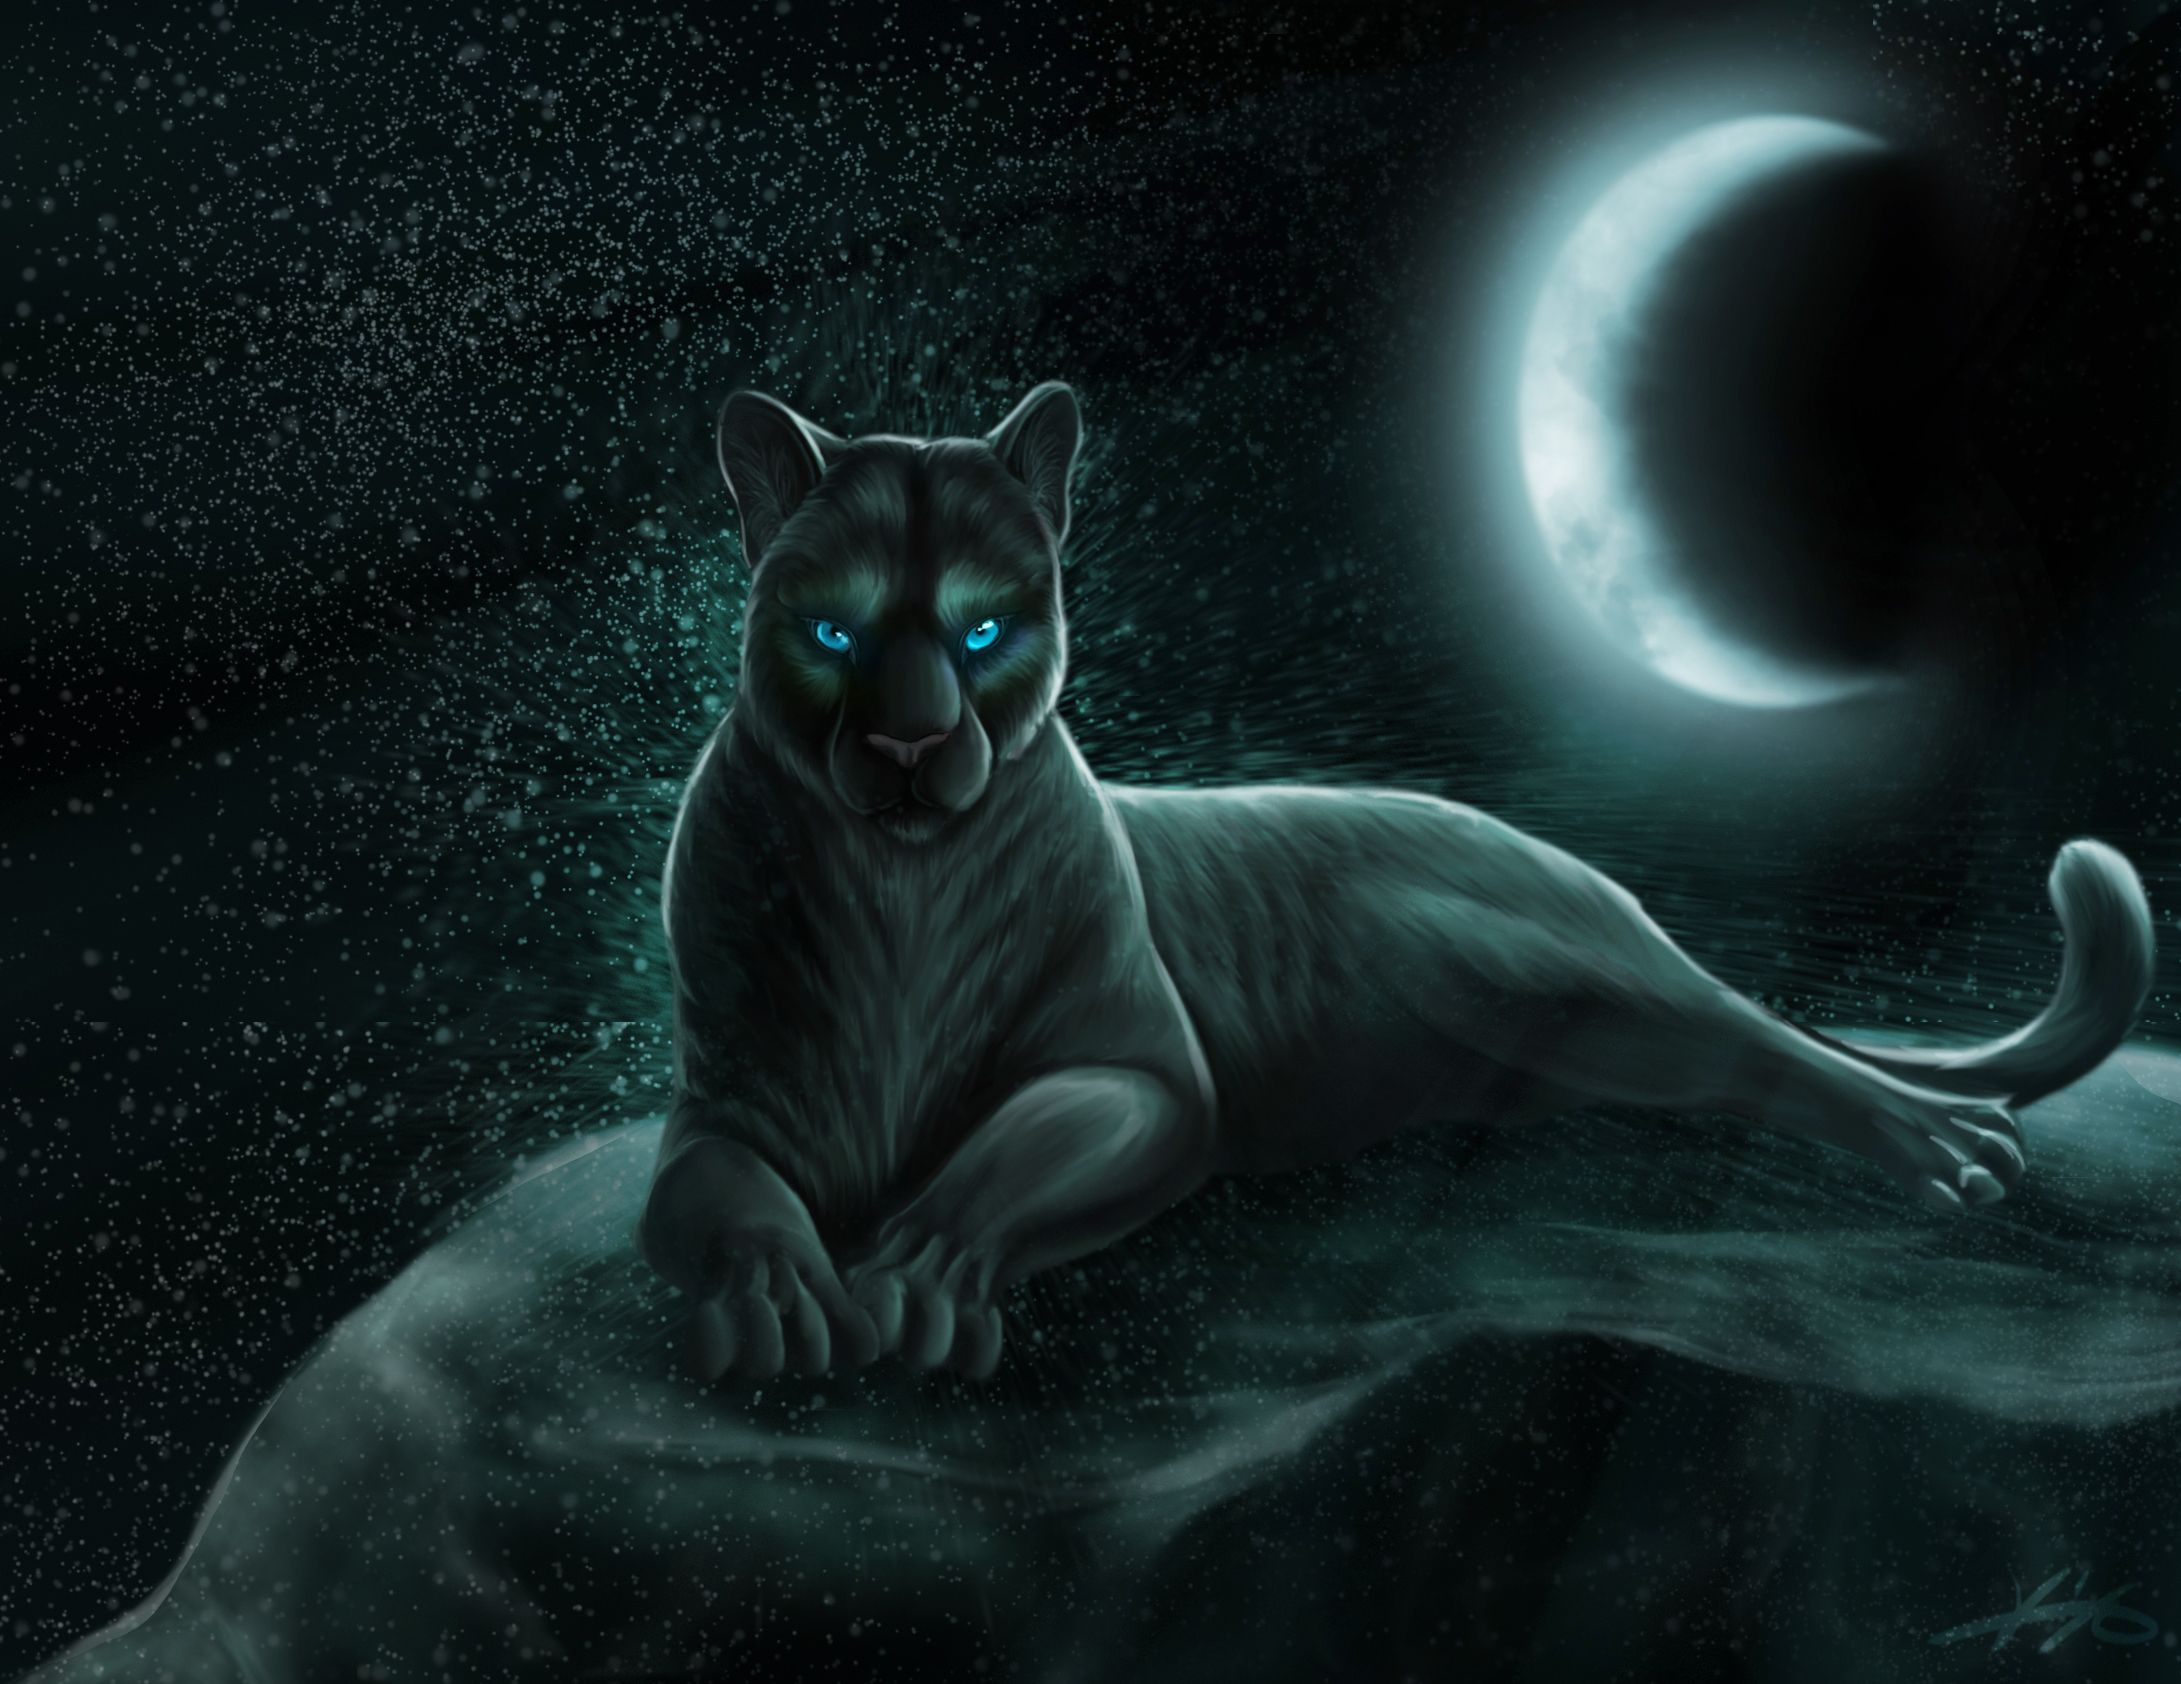 207 Animal Hd Wallpapers Backgrounds Wallpaper Abyss Cat Spirit Cat Spirit Animal Tiger Spirit Animal